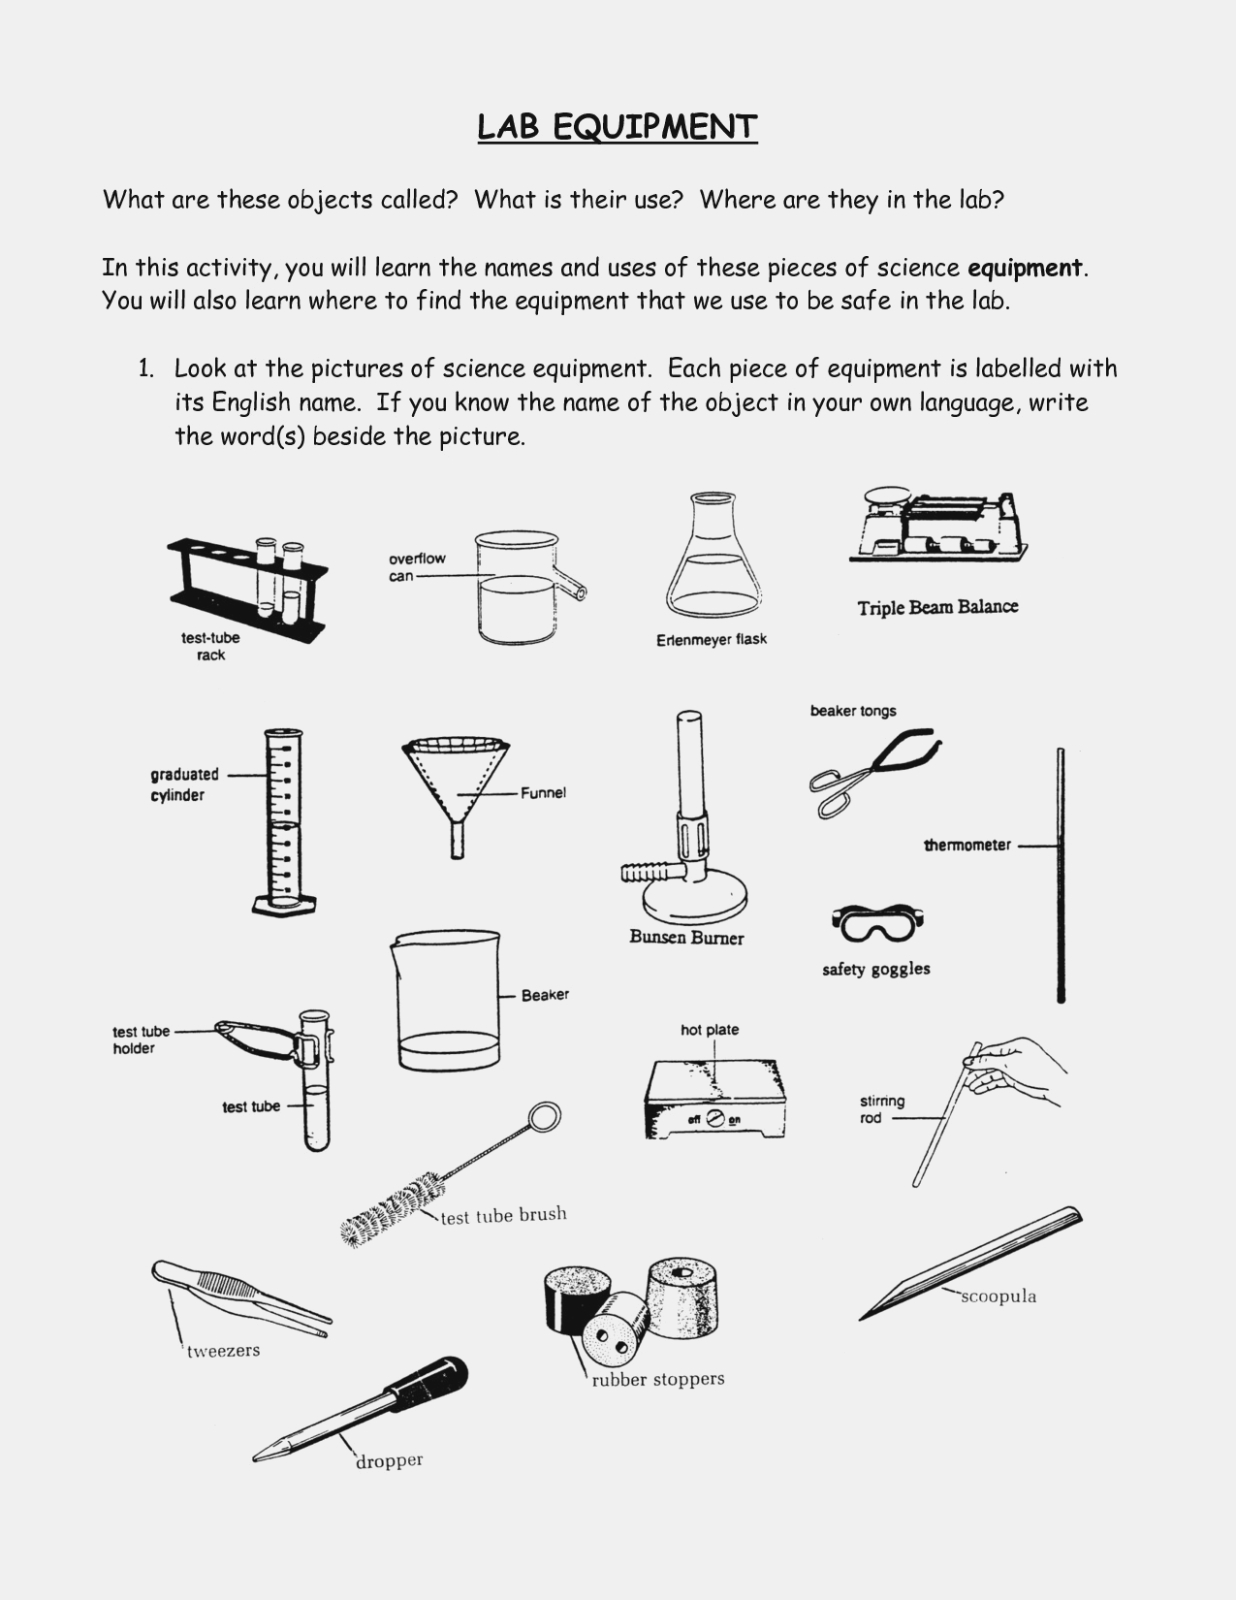 Lab Equipment Worksheet Answers Best Equipment In The